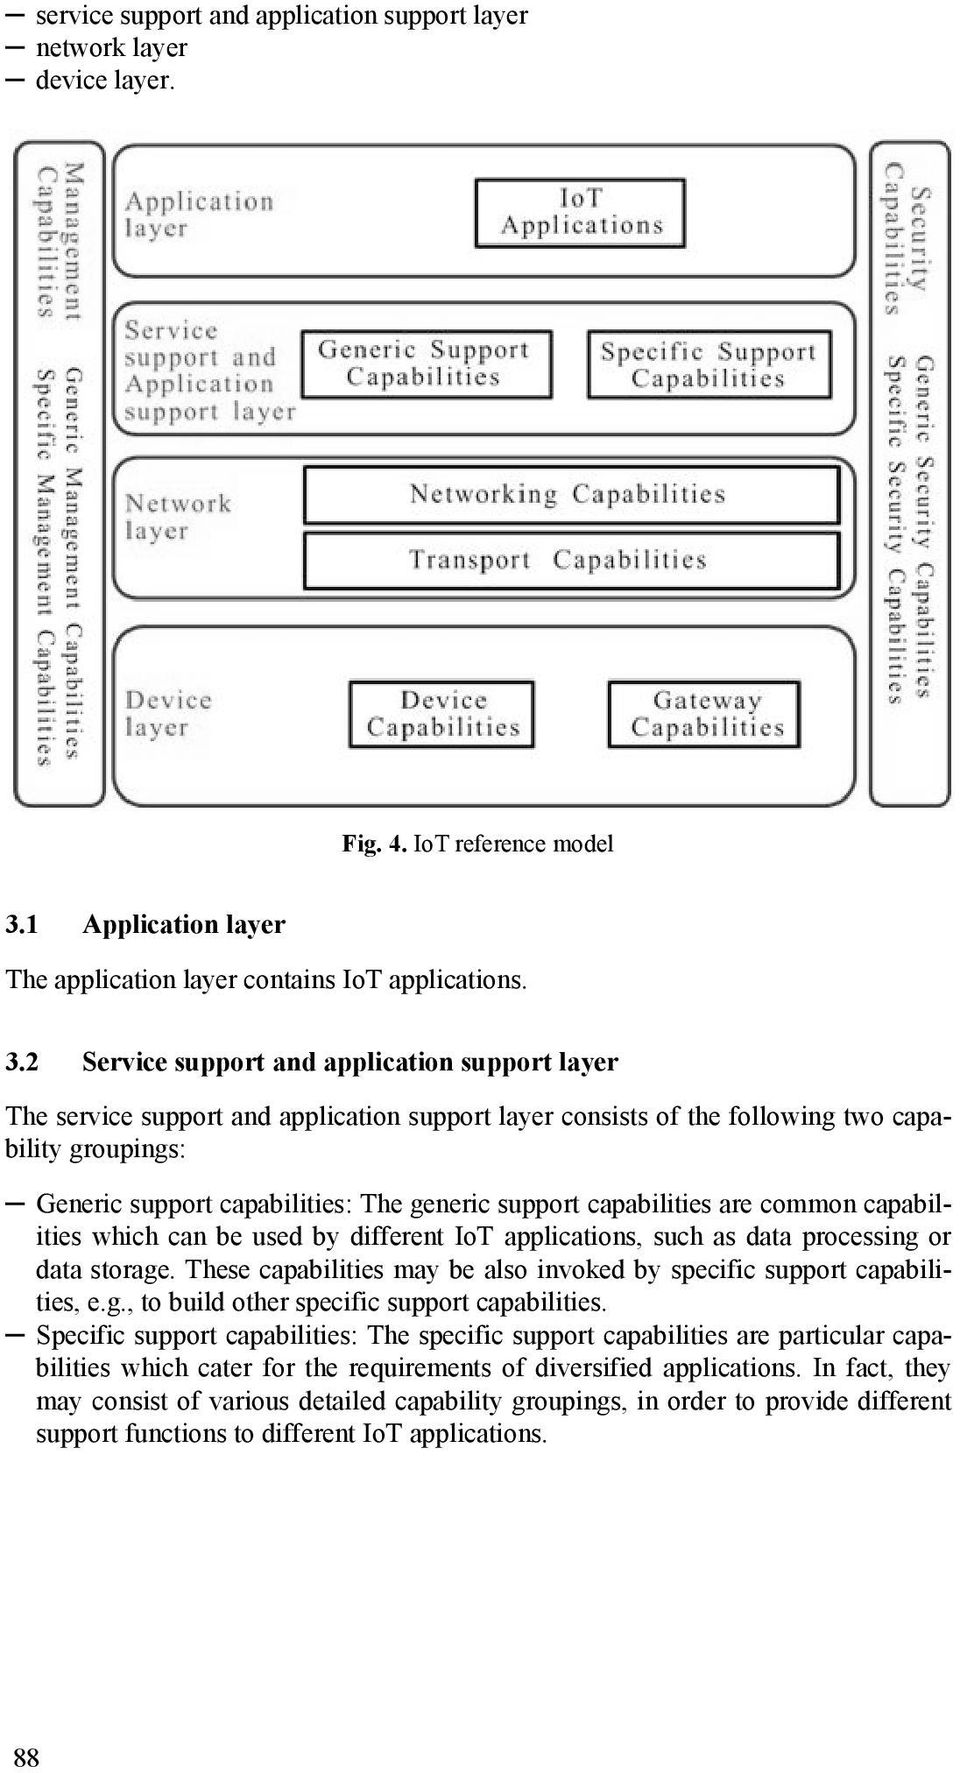 2 Service support and application support layer The service support and application support layer consists of the following two capability groupings: Generic support capabilities: The generic support